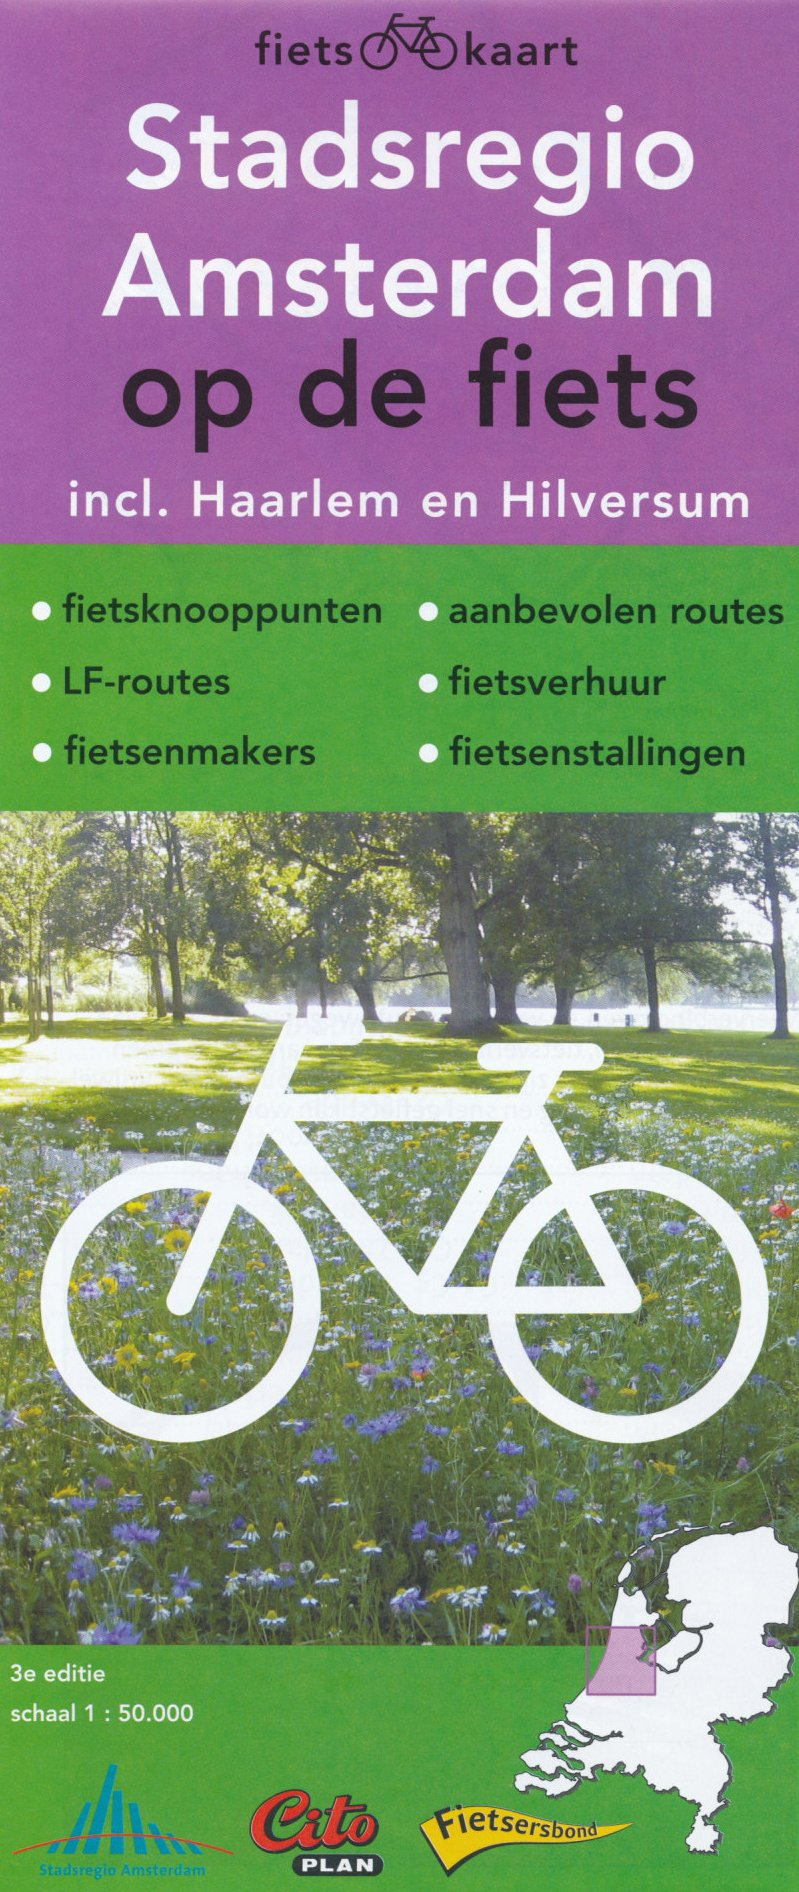 Amsterdam (Netherlands) 1:50, 000 regional map with cycling ...